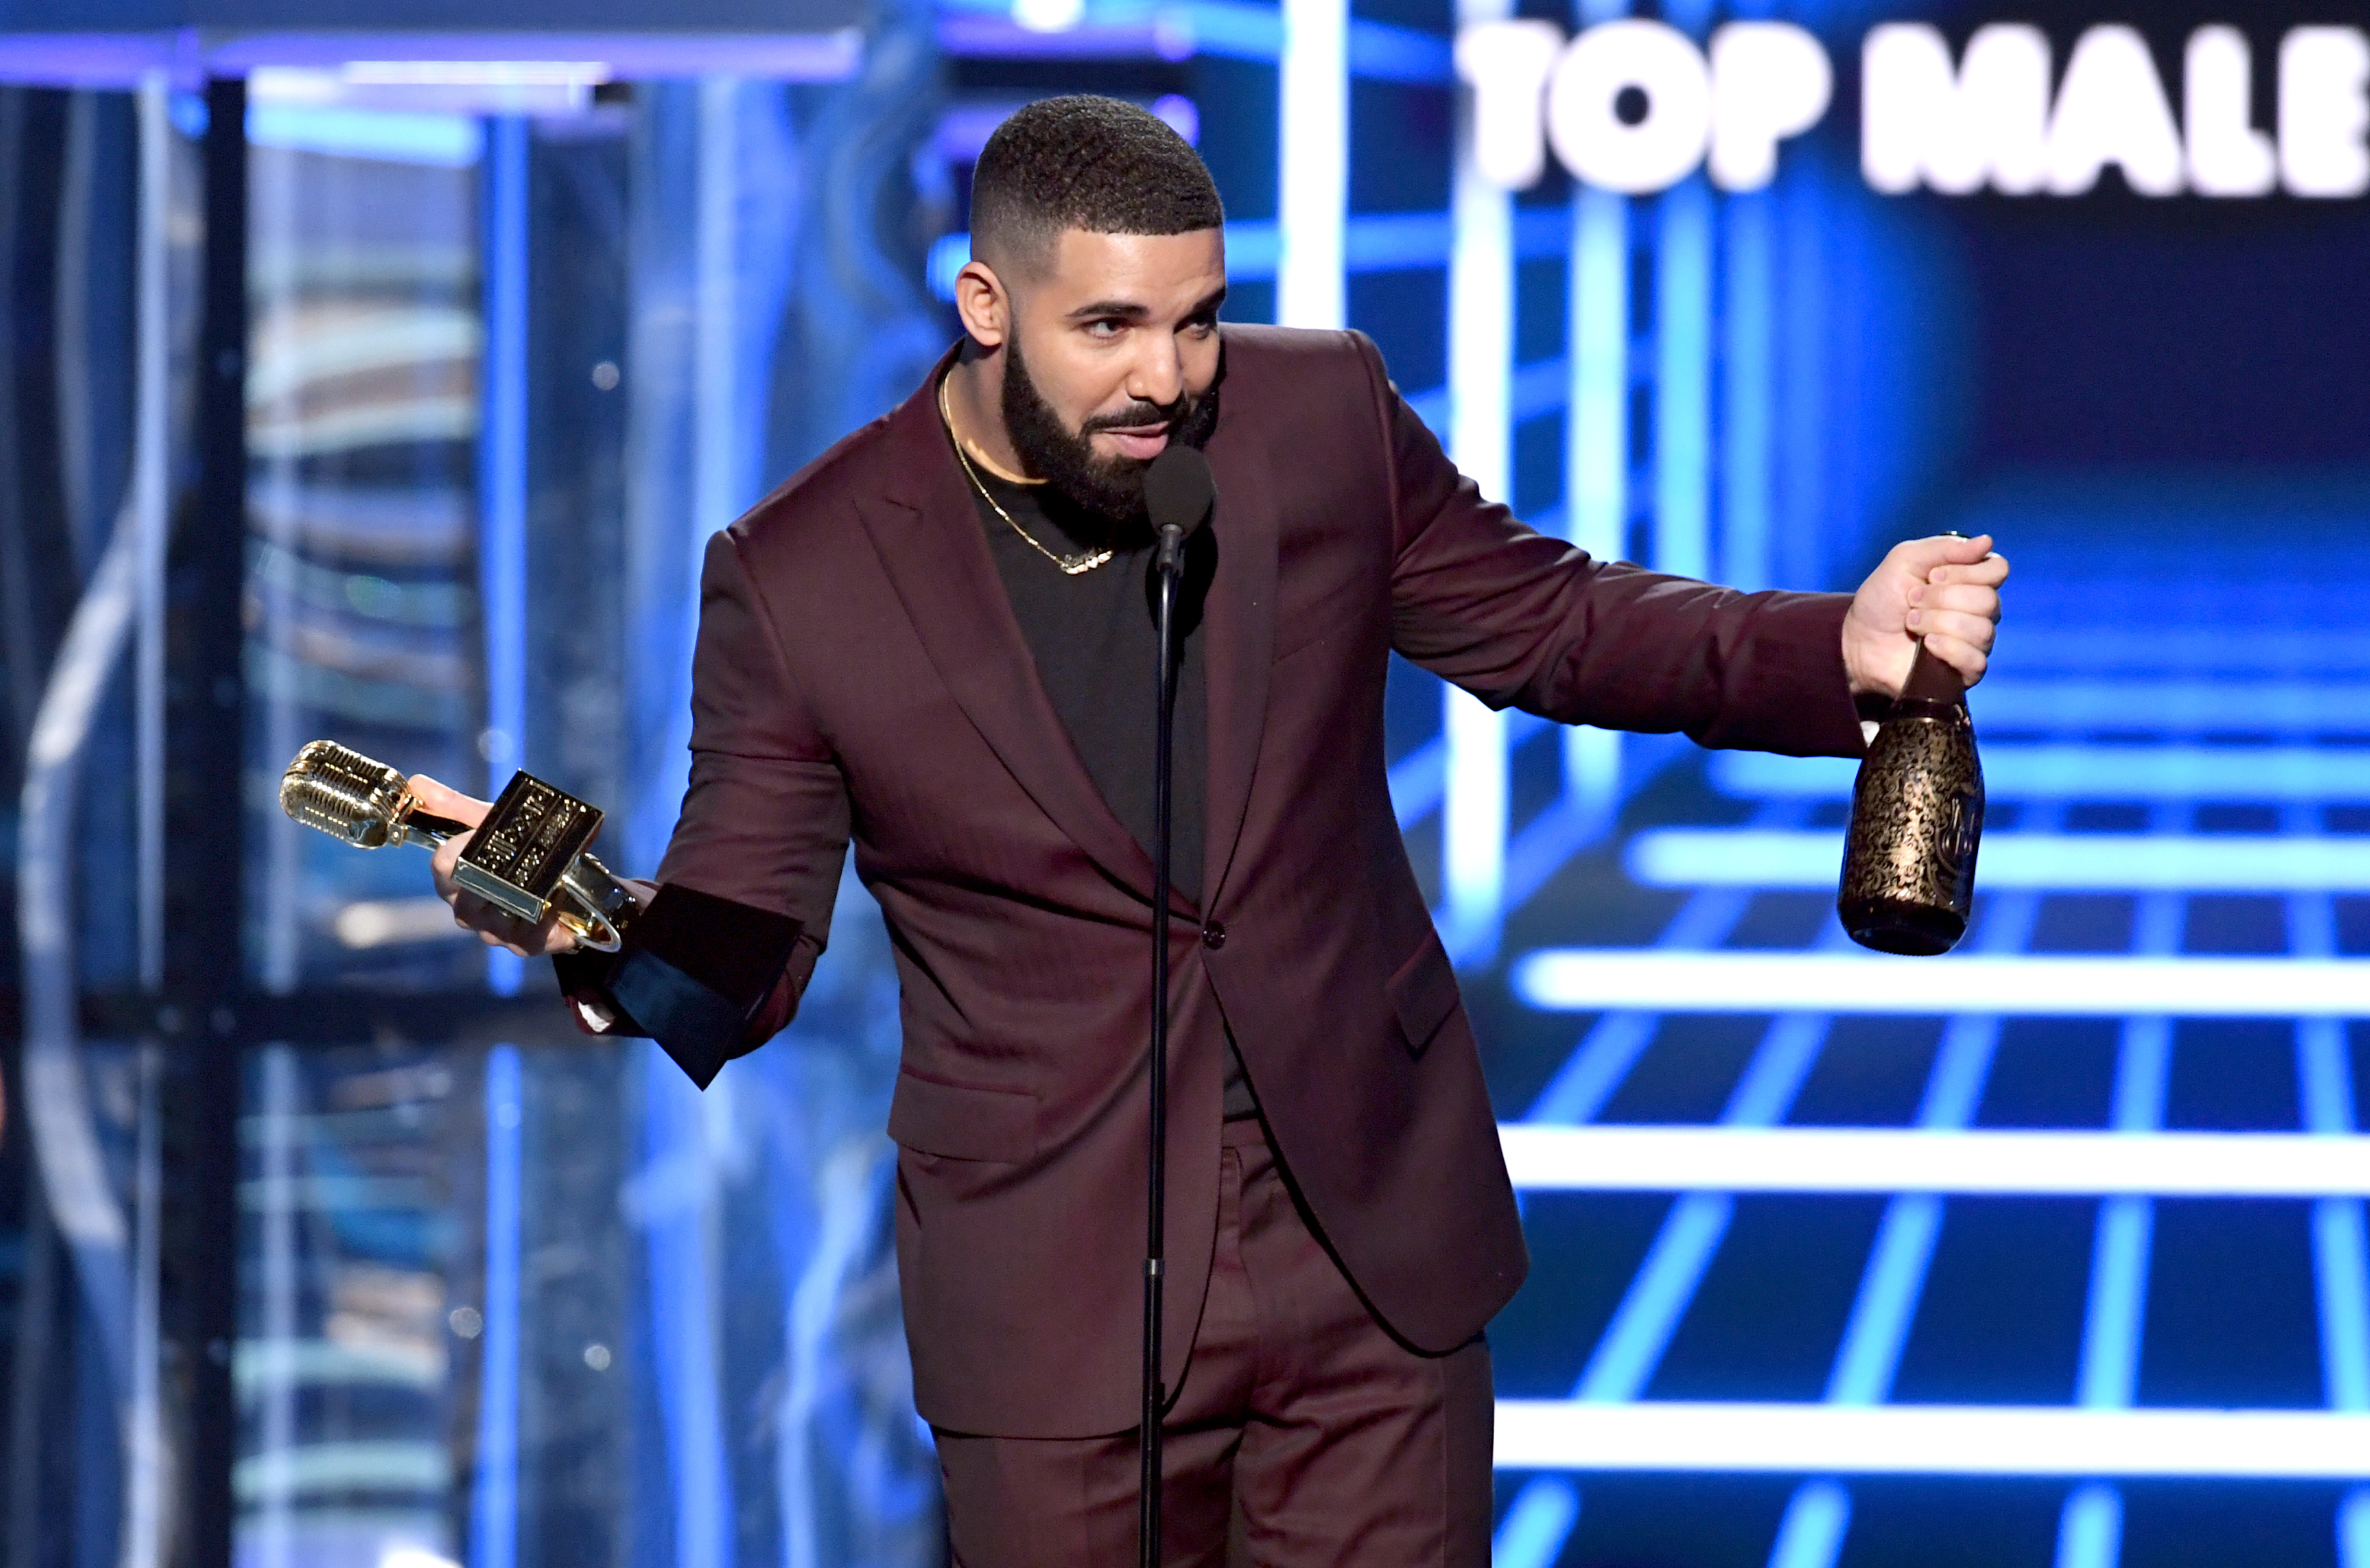 Drake accepts the award for top male artist during the Billboard Music Awards at the MGM Grand Garden Arena in Las Vegas on May 1, 2019.